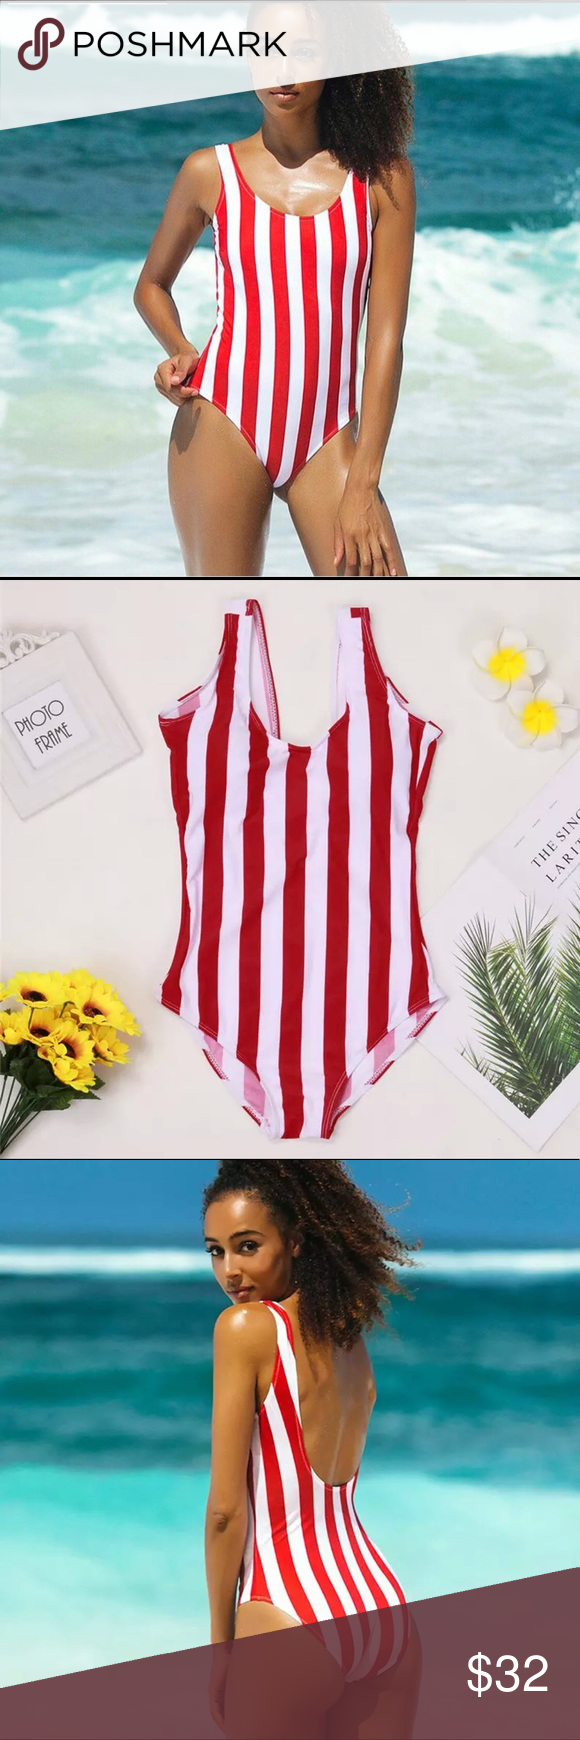 d1a33902a0 NWT Red stripe one piece swimsuit 🍎 The perfect mix between sporty and  sexy. This